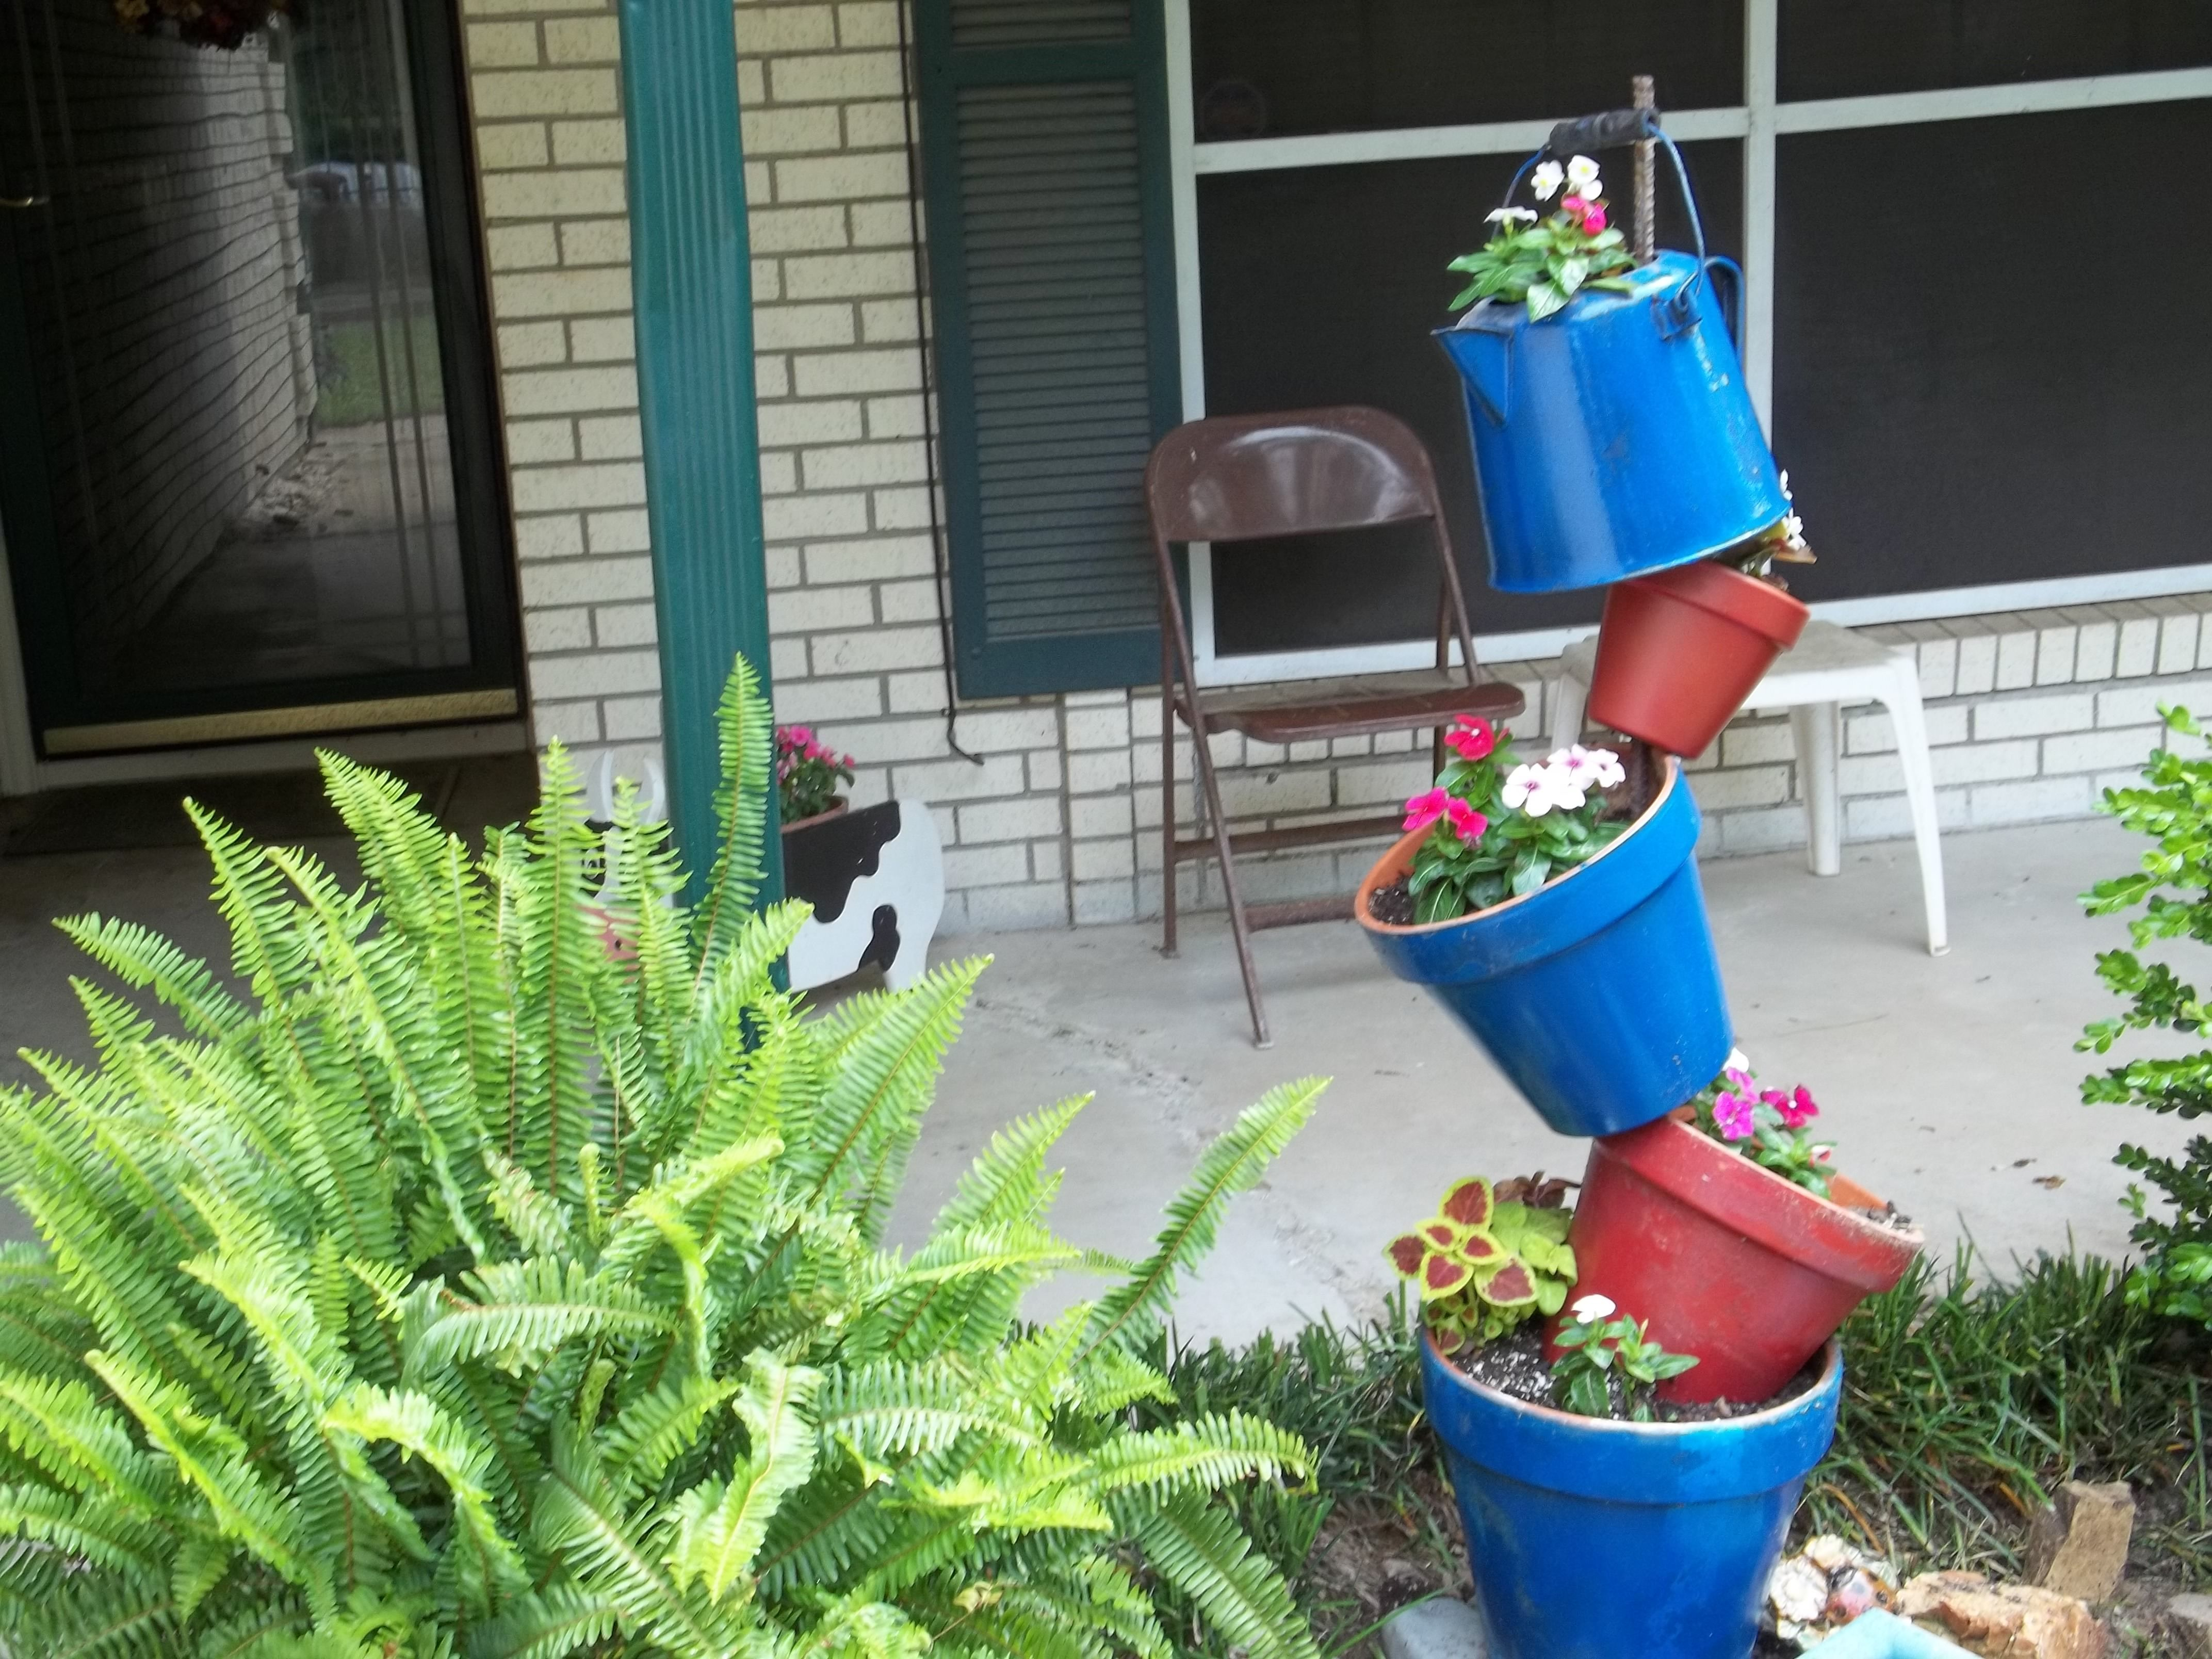 Coffee Pot Planter Redone Planter With Old Coffee Pot On Top Loving